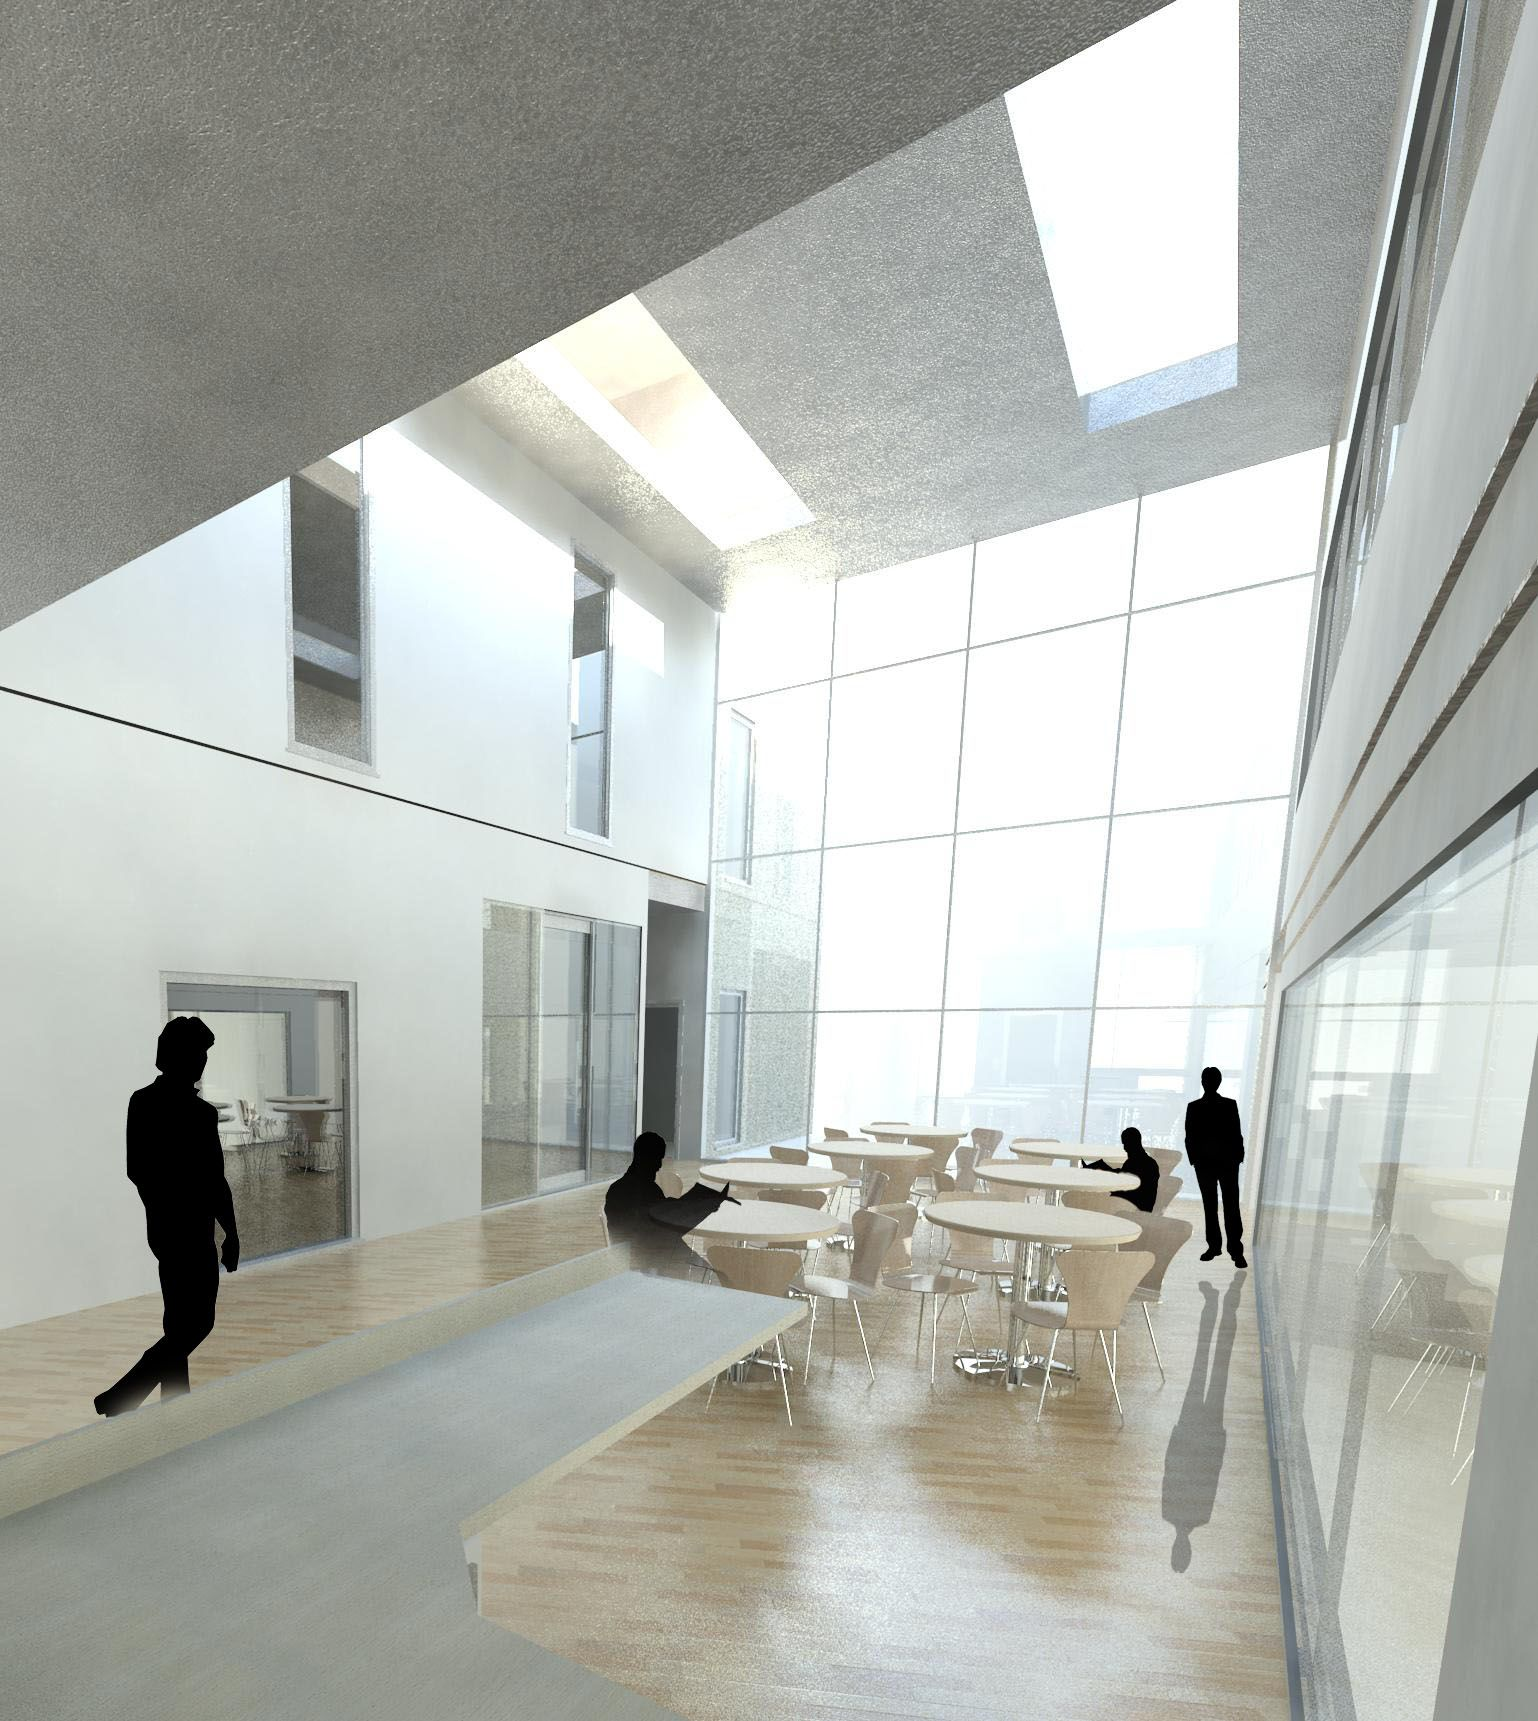 Open light space for the public to socialise in